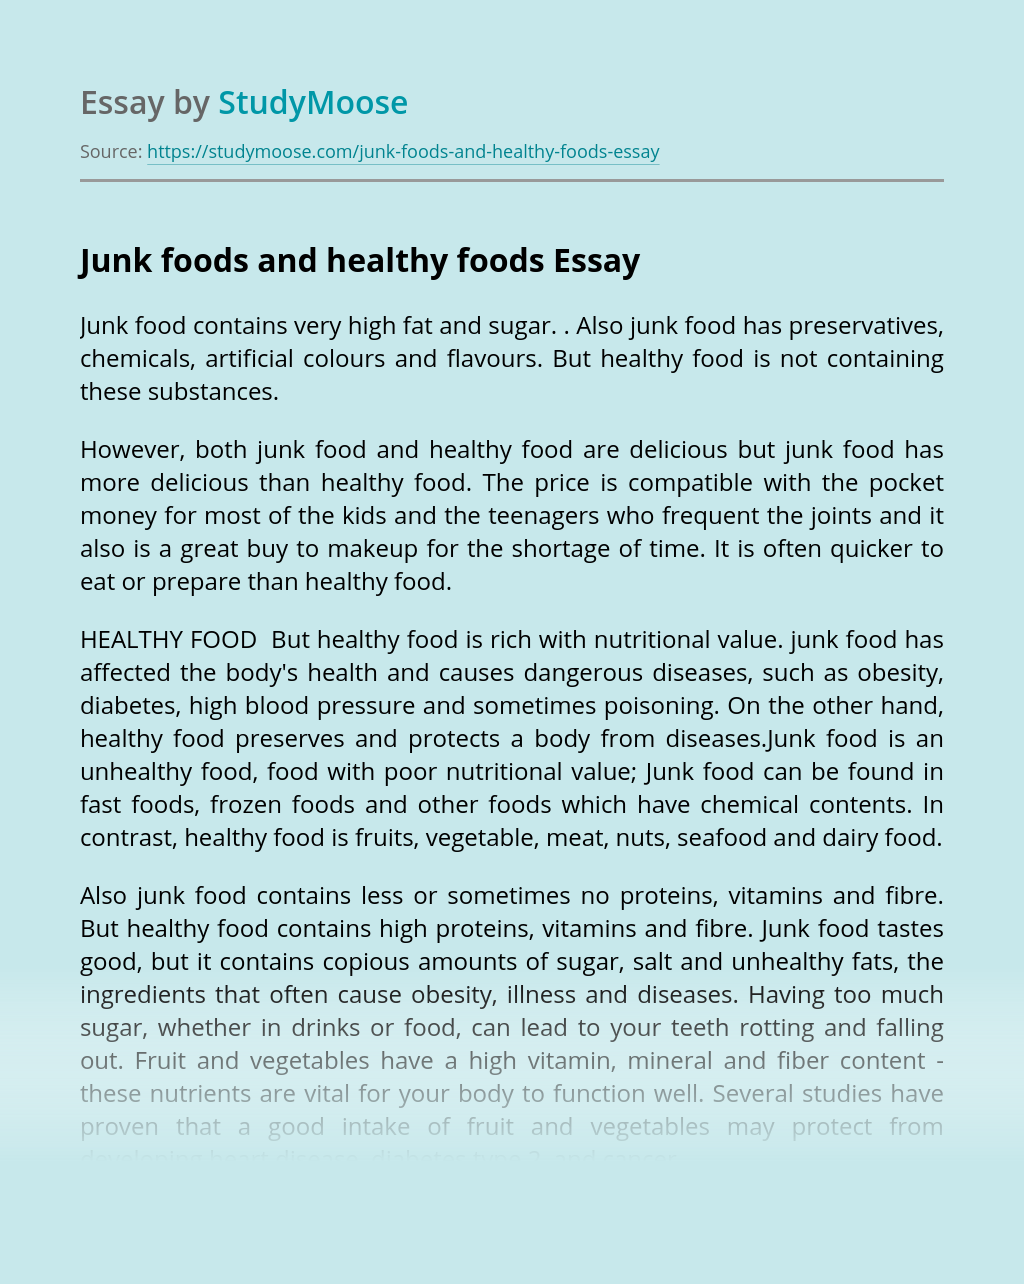 Junk foods and healthy foods